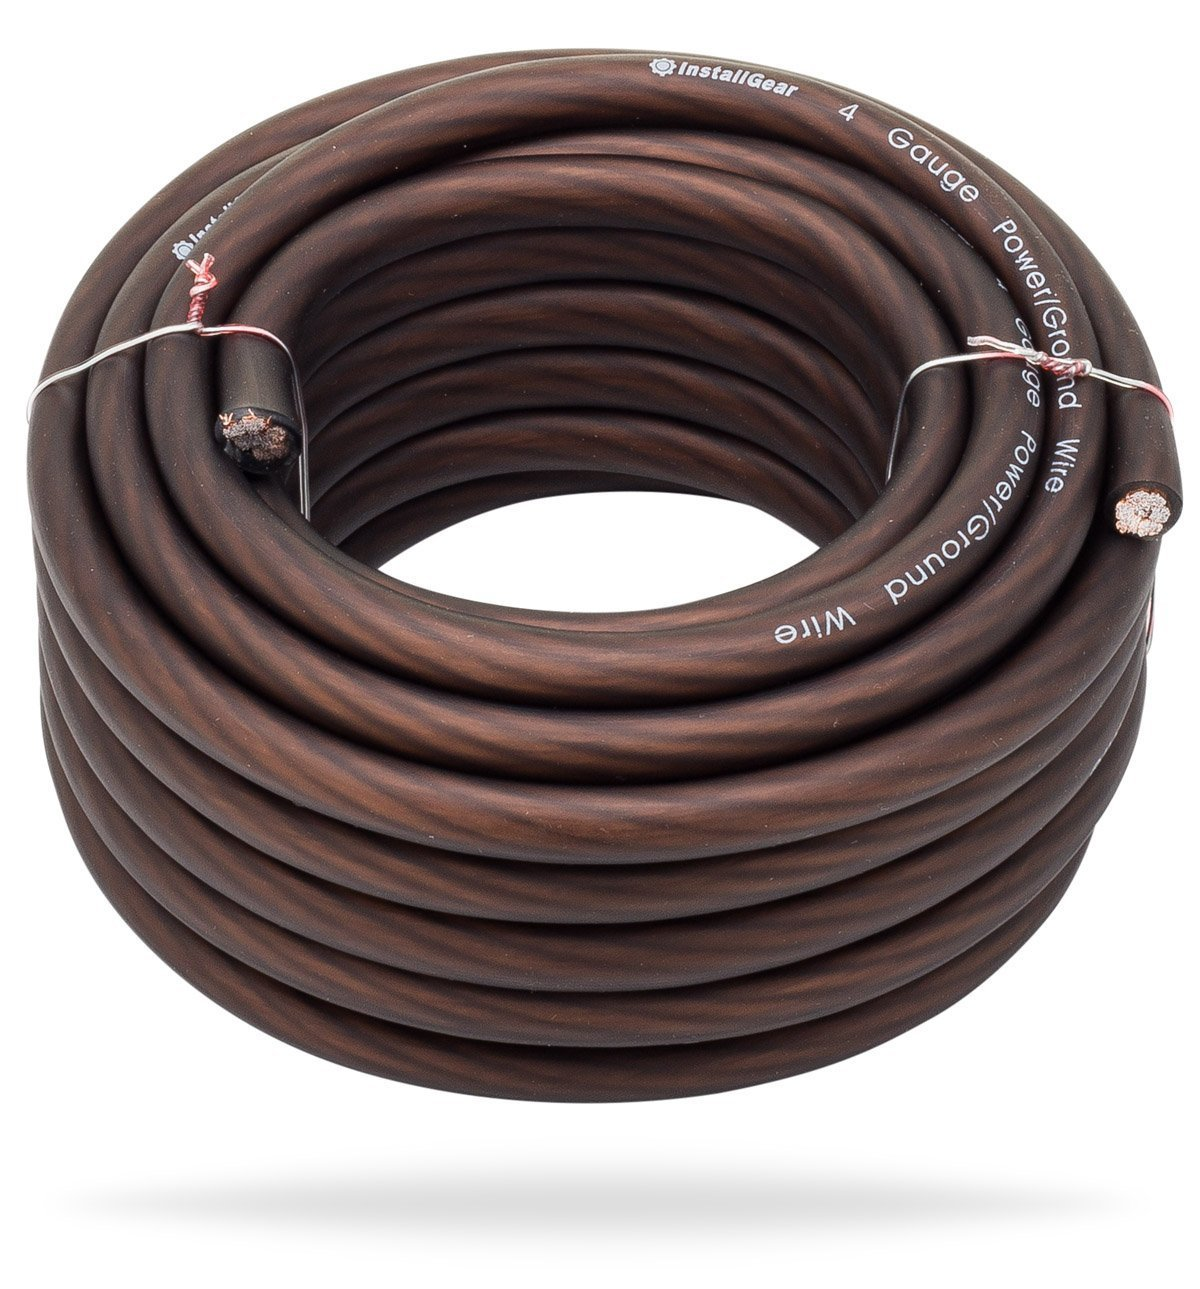 InstallGear 4 Gauge Black 25ft Power/Ground Wire - OFC (99.9% Oxygen-free Copper)